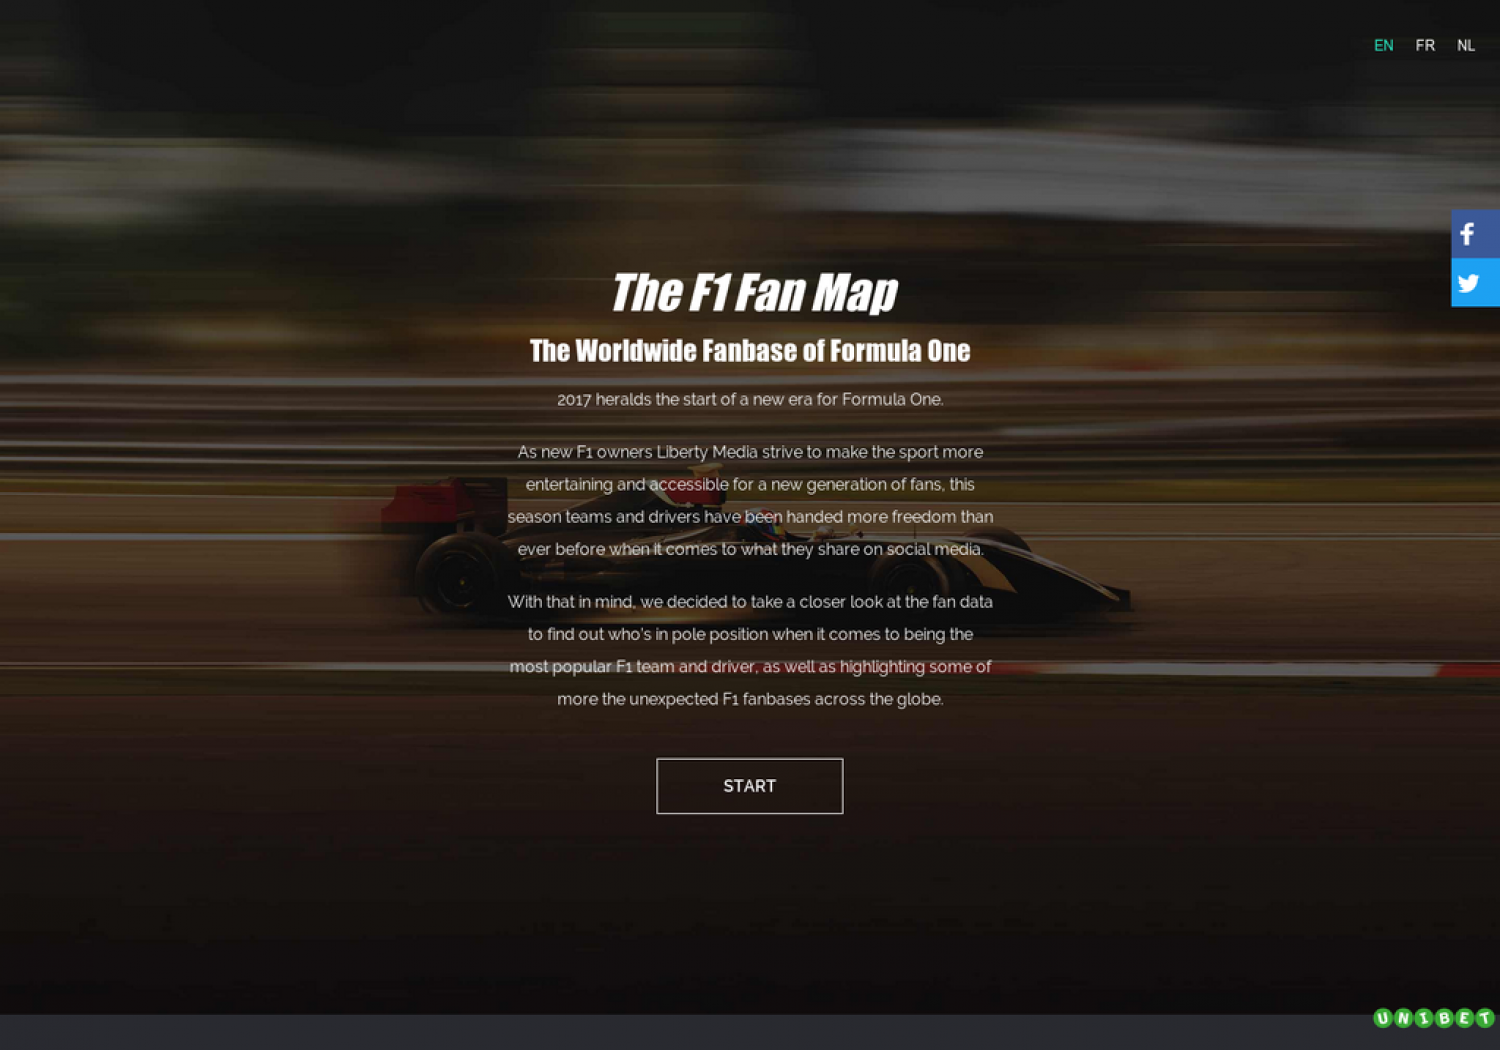 The F1 Fan Map - The Worldwide Fanbase of Formula One Infographic